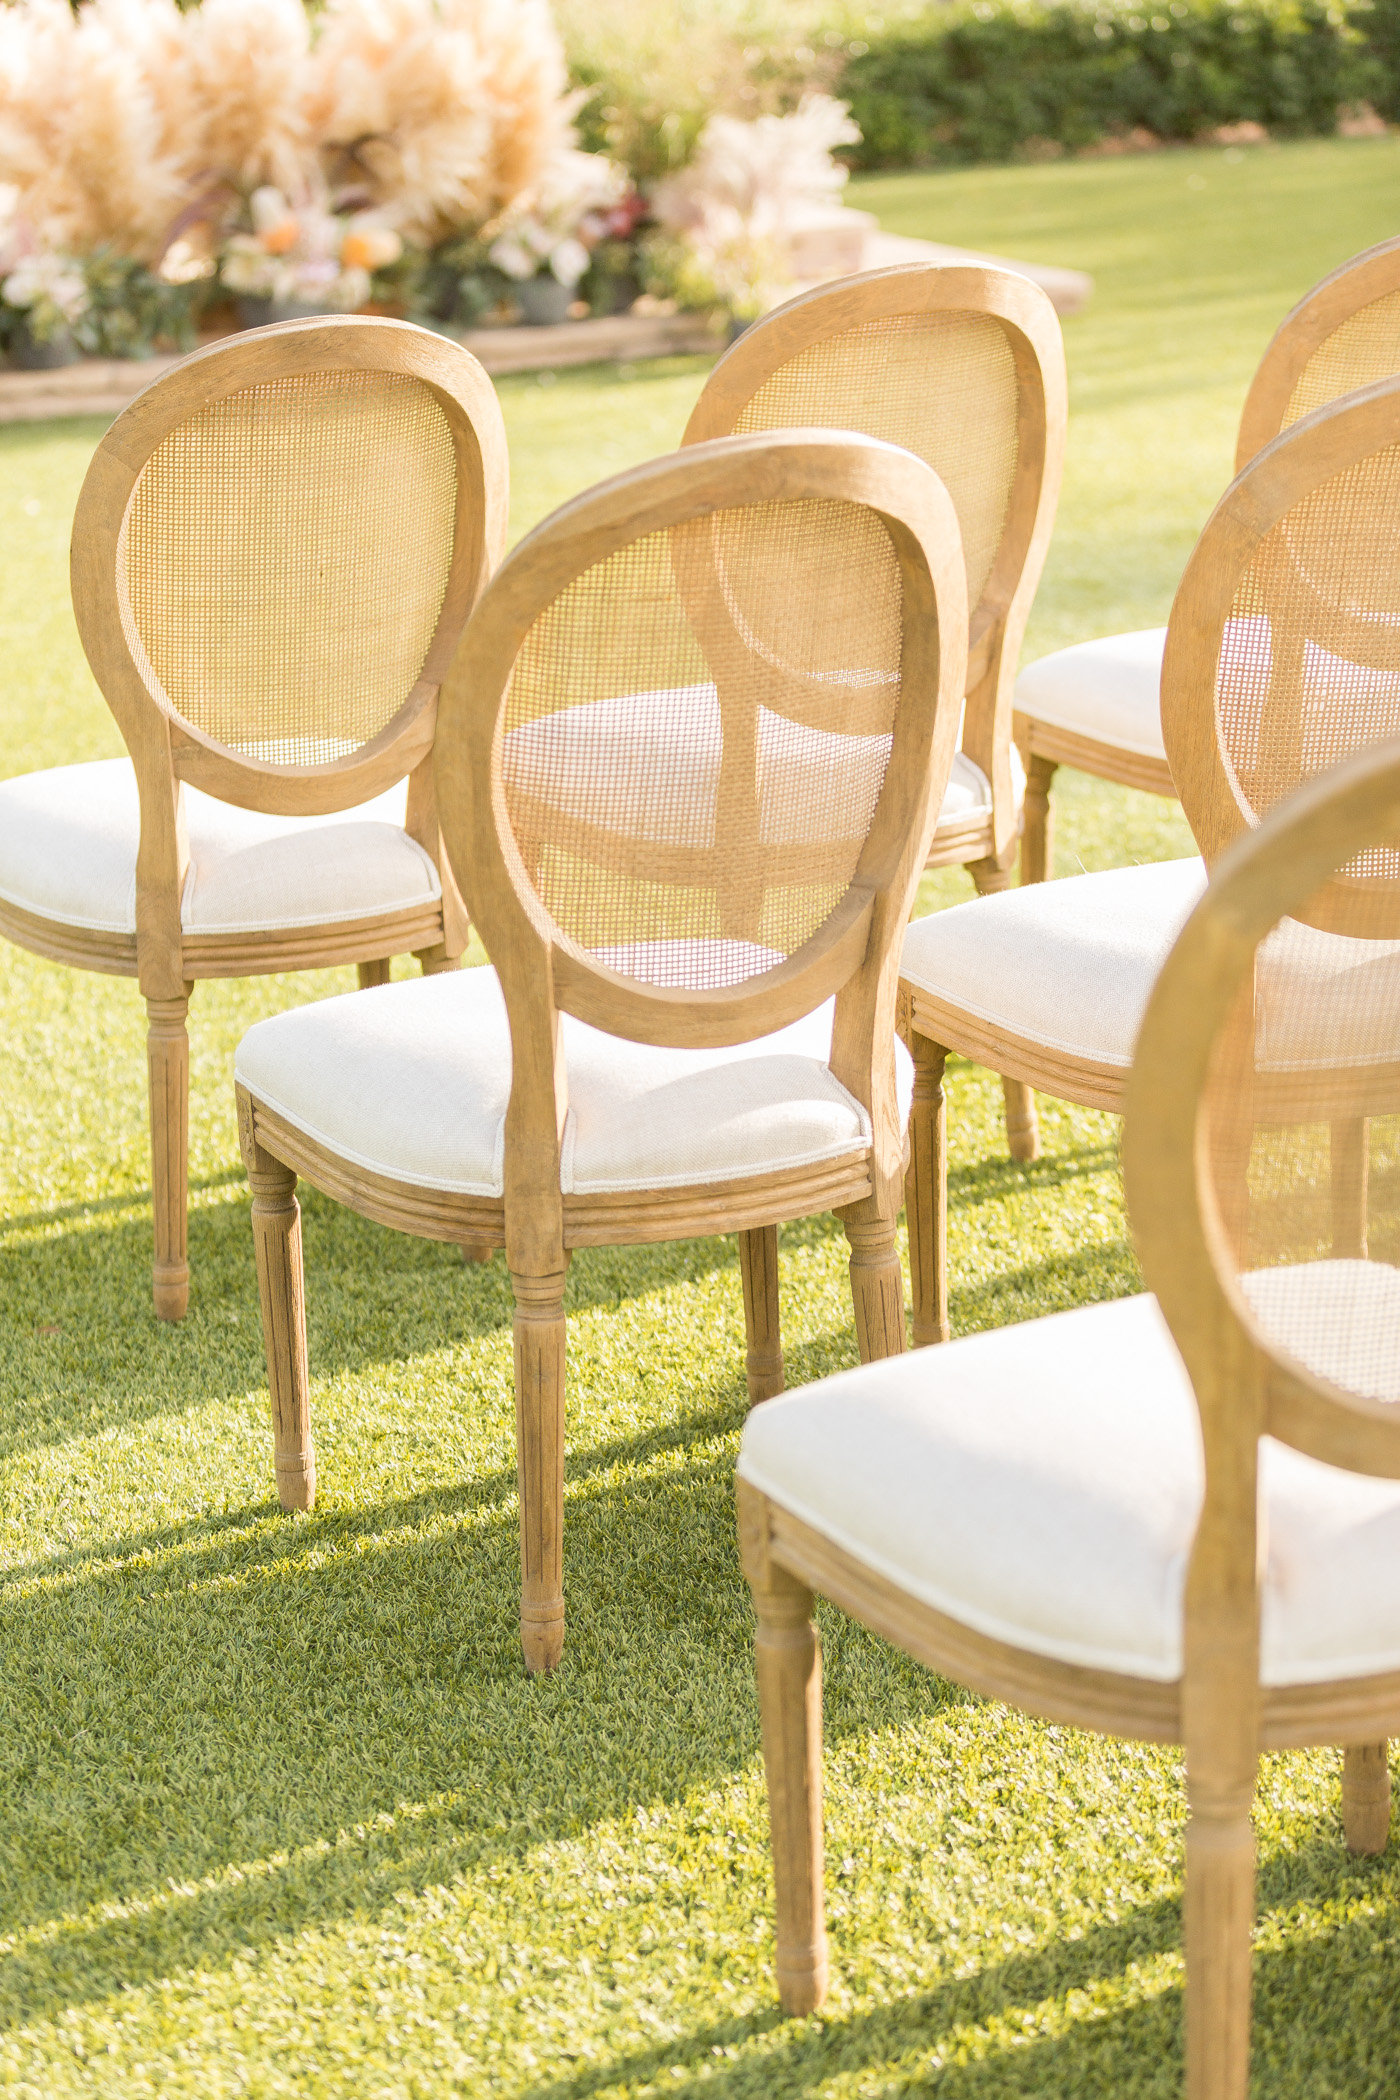 ceremony chairs - photo by Karlee K Photography http://ruffledblog.com/cheerful-desert-wedding-inspiration-with-bright-yellow